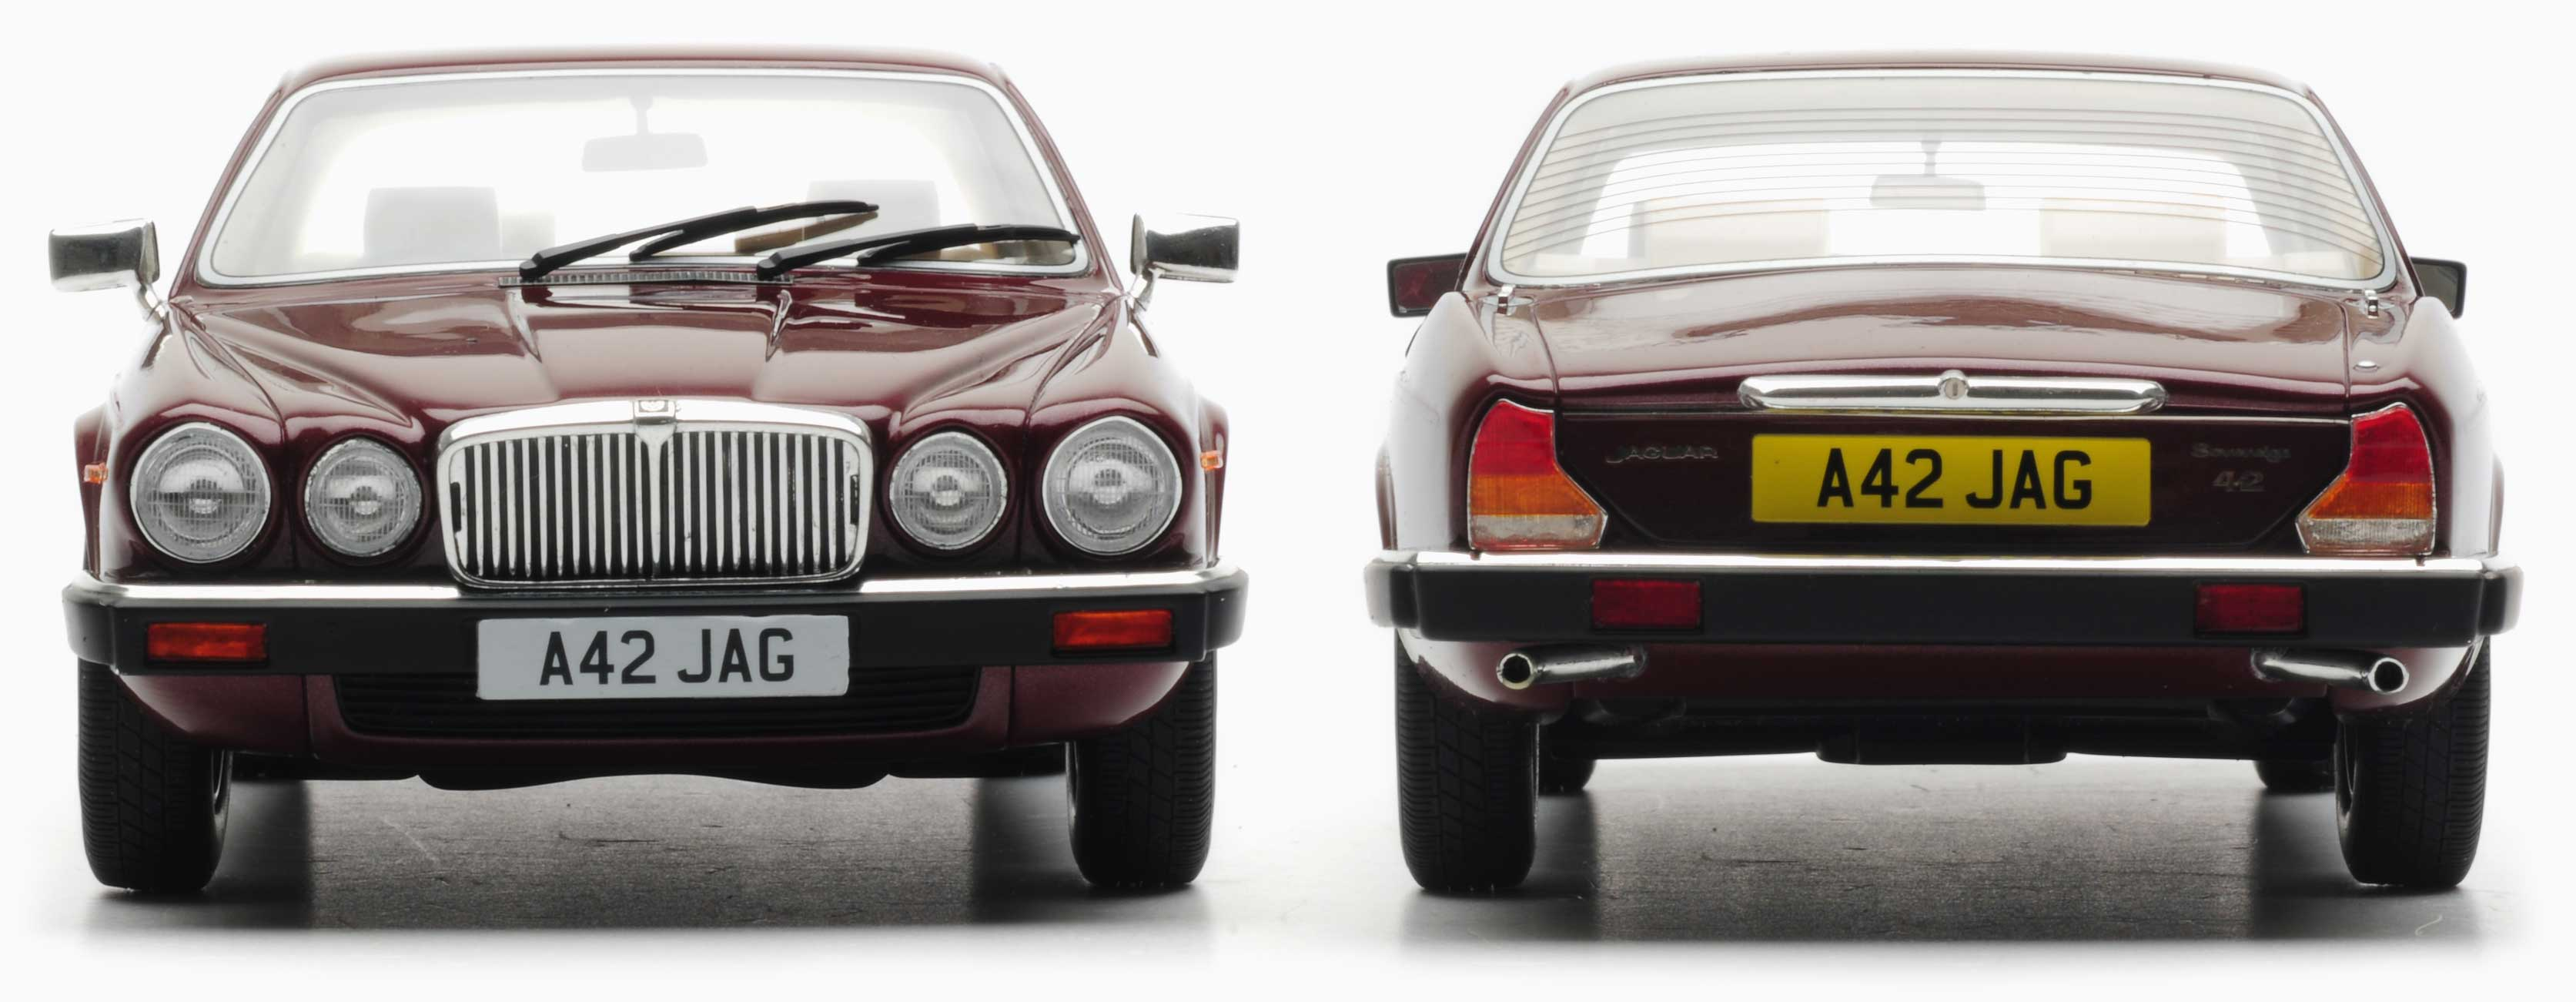 1:18 1979 Jaguar XJ SIII model from Cult